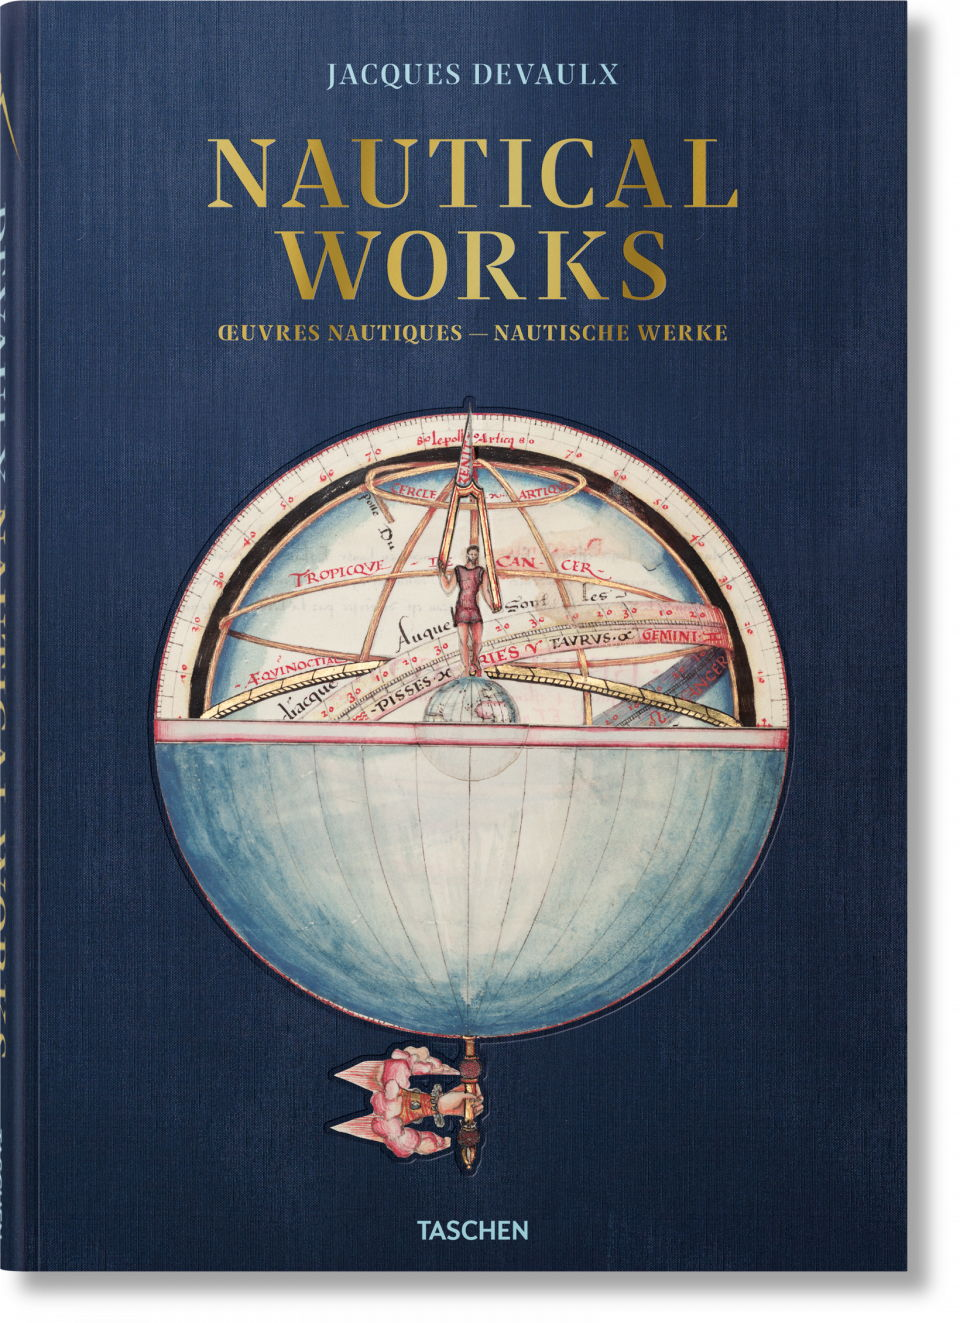 Jacques Devaulx - Nautical Works. Riproduzione in formato XL completa di miniature dell'enciclopedia per marinai di Devaulx, pubblicata per la prima volta nel 1583. Il paradiso delle carte nautiche - ed. Taschen - 85€ - Guida ai Regali di Natale 2018